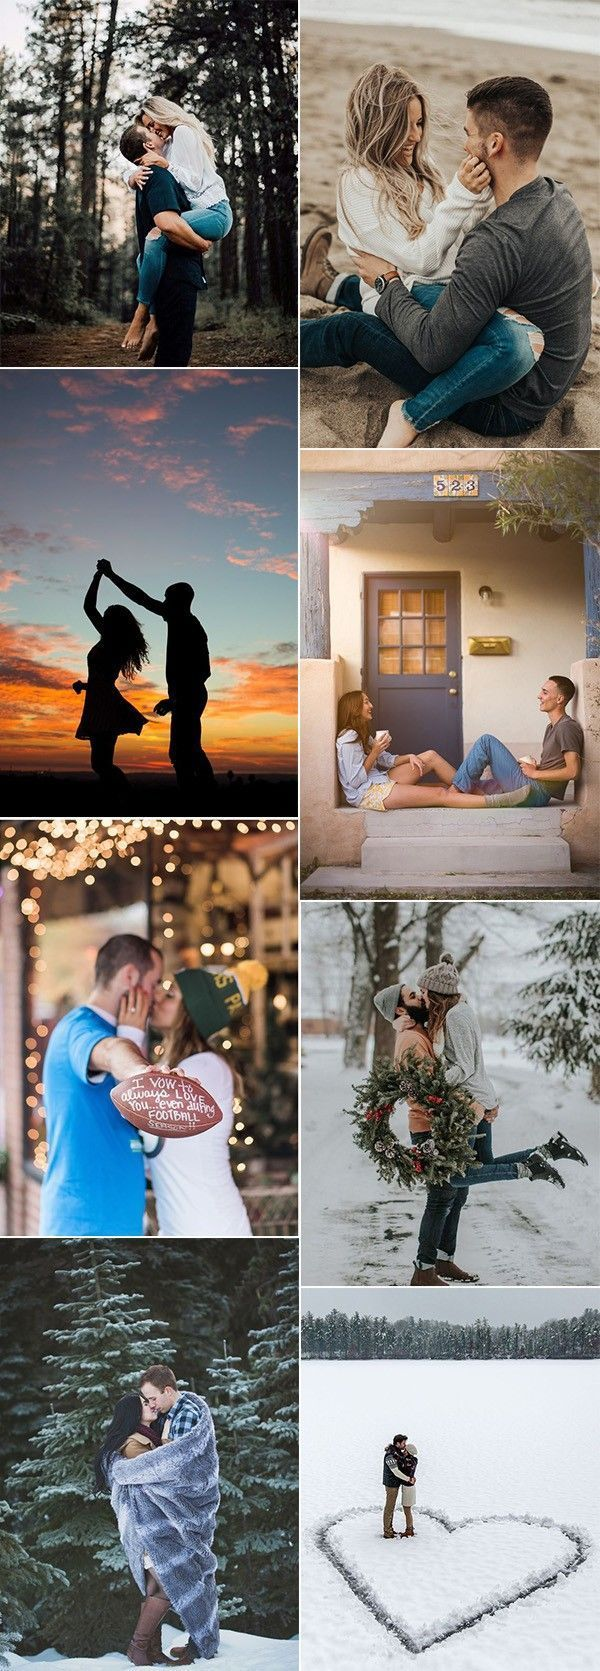 Engagement photo ideas for the Trends 2018 and 2019 #engagement #fotoideen #tren ... -  Engagement photo ideas for trends 2018 and 2019  #engagement #fotoideen #trends #weddingengagementi - #Engagement #EngagementPhotosafricanamerican #EngagementPhotosbeach #EngagementPhotoscountry #EngagementPhotosfall #EngagementPhotosideas #EngagementPhotosoutfits #EngagementPhotosposes #EngagementPhotosspring #EngagementPhotoswinter #EngagementPhotoswithdog #fotoideen #Ideas #PHOTO #summerEngagementPhotos #